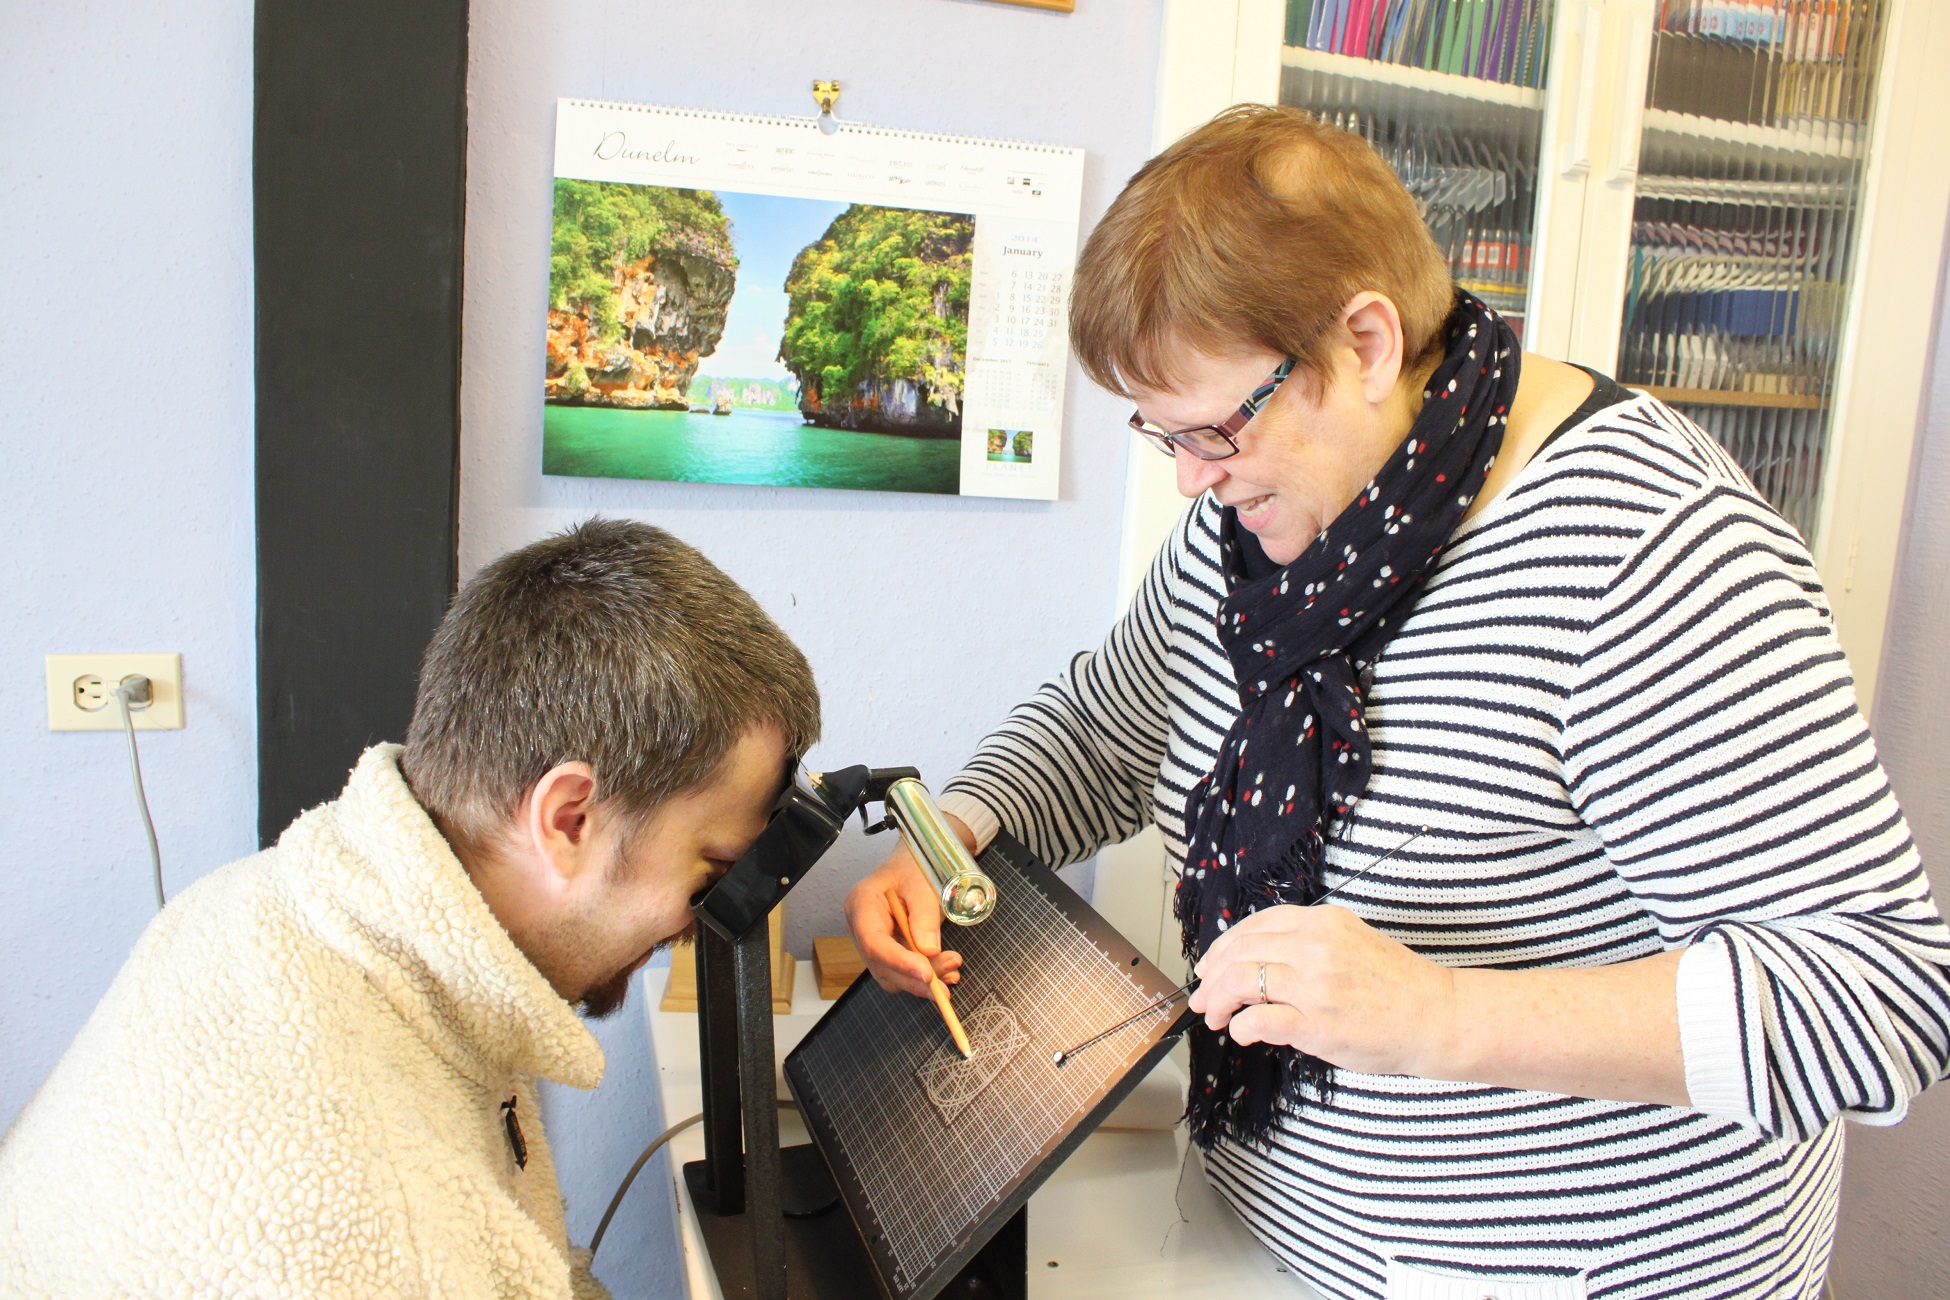 Measuring the visual field at Shaylers Vision Centre, Wareham, UK